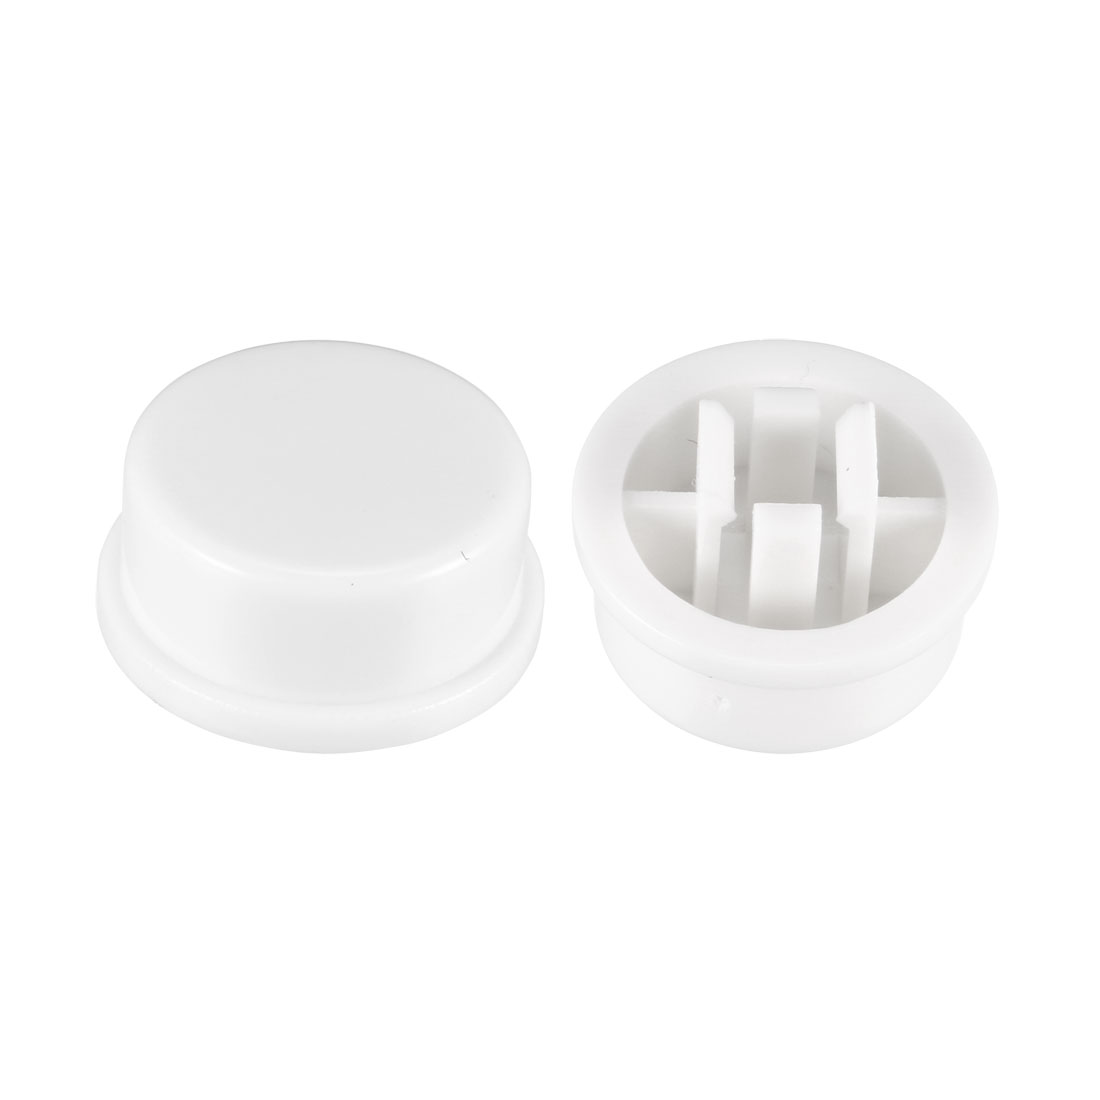 20Pcs 13x5.6mm Pushbutton Switch Caps Cover White for 12x12x7.3mm Tact Switch